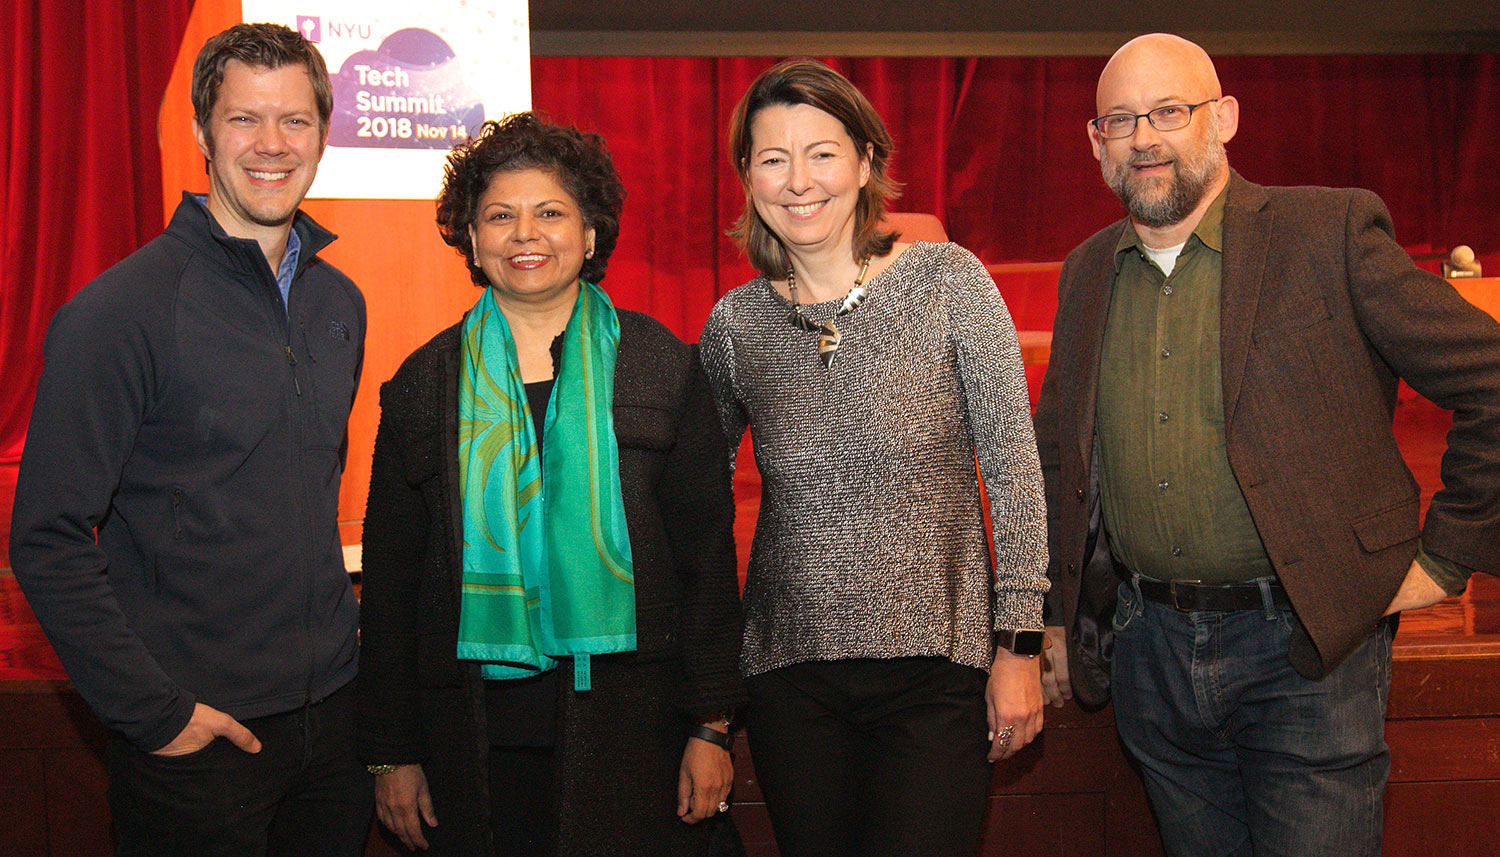 Speakers posing in front of a red curtain